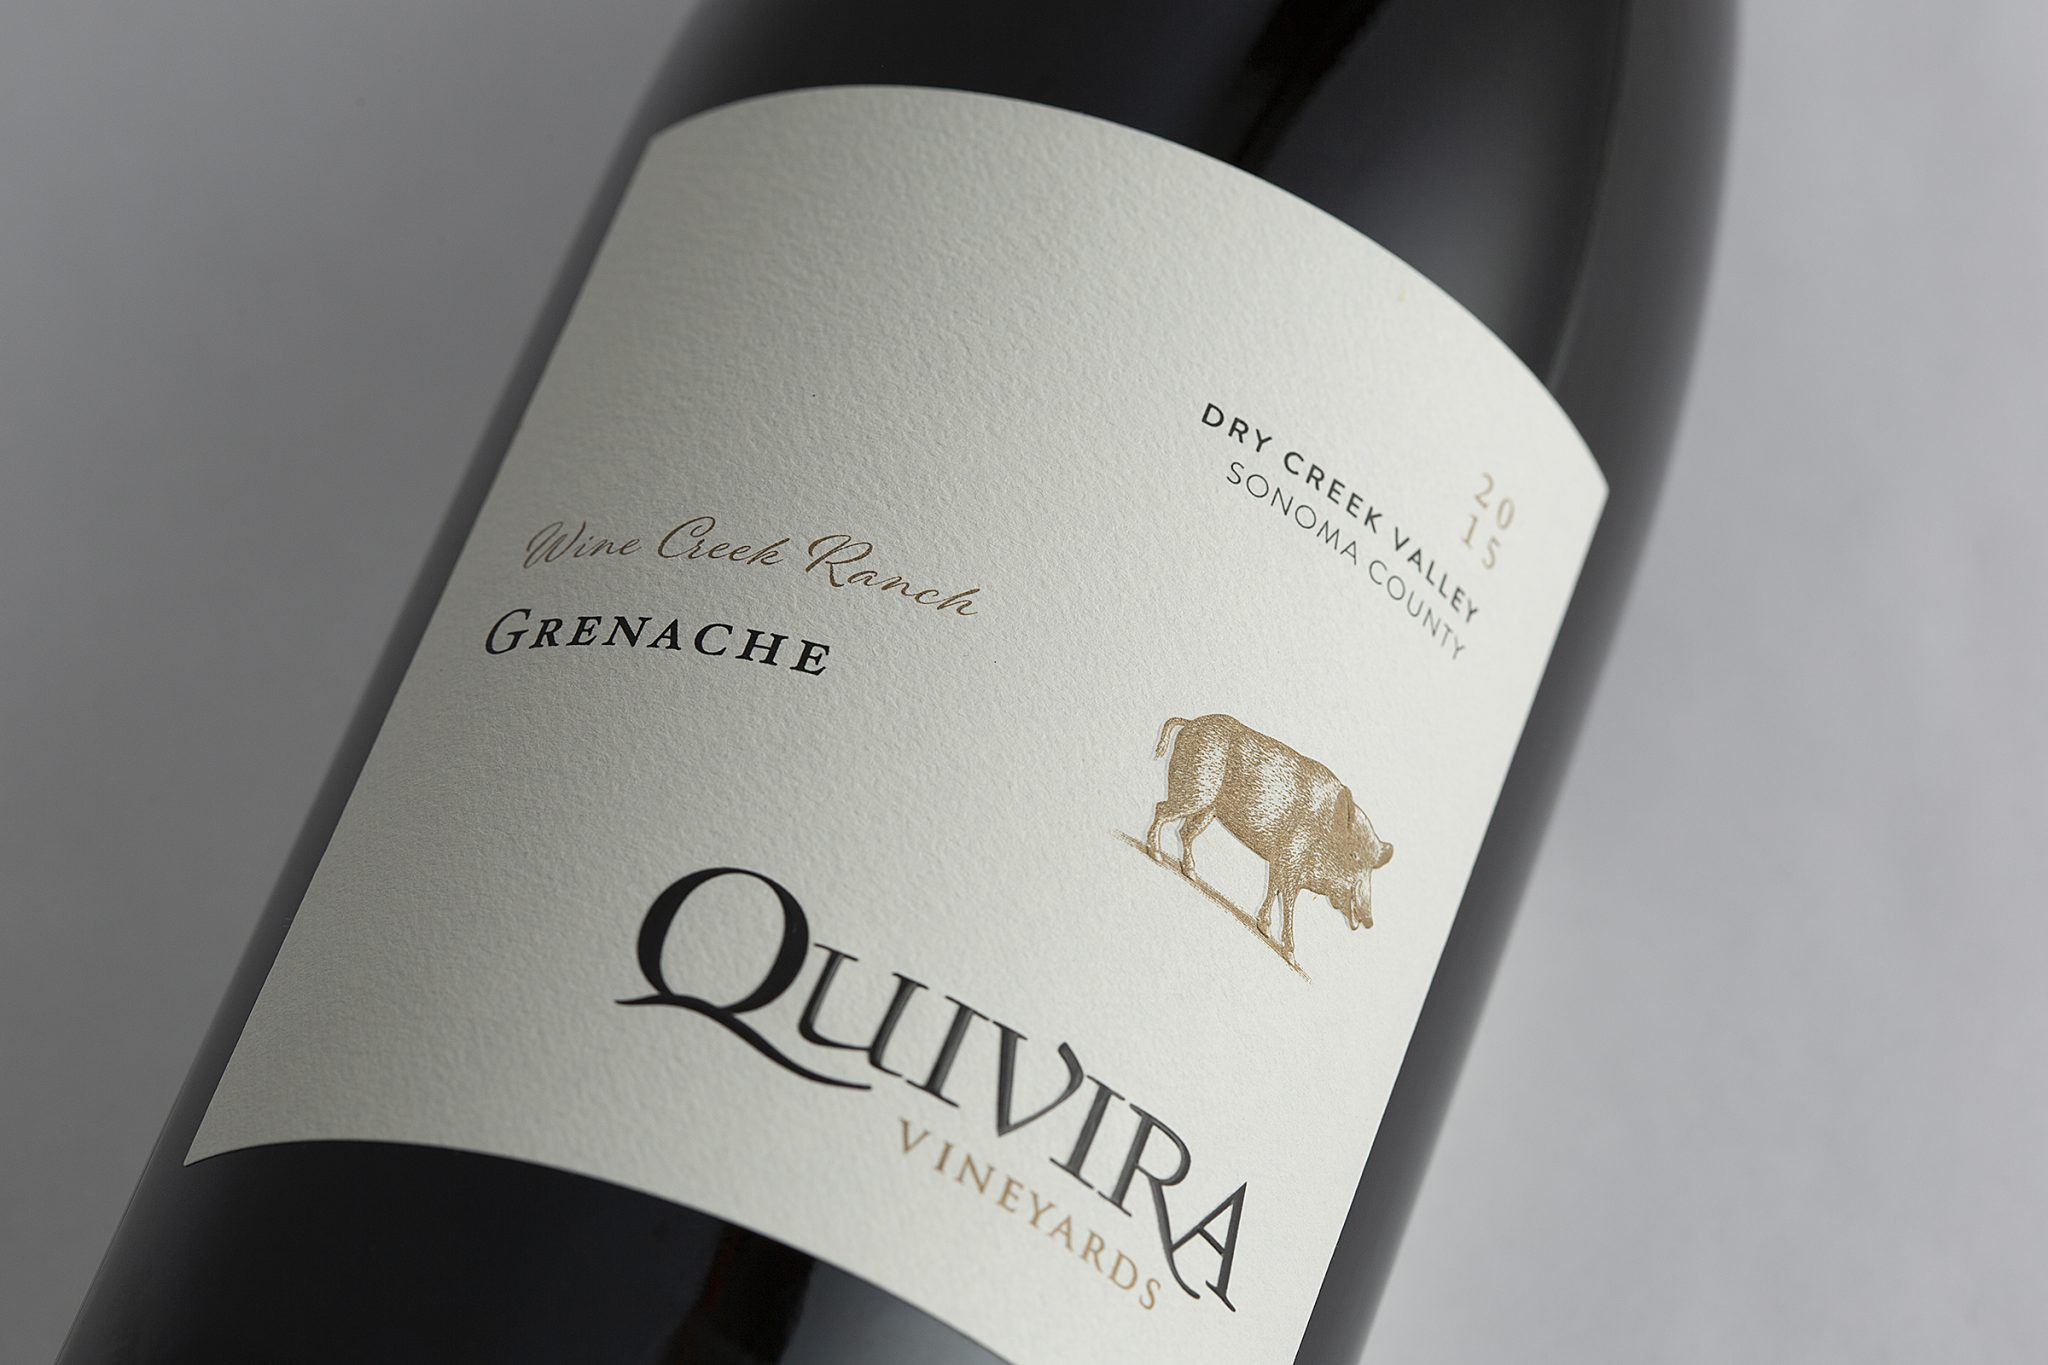 Quivira Single-Vineyard Wine Label Design